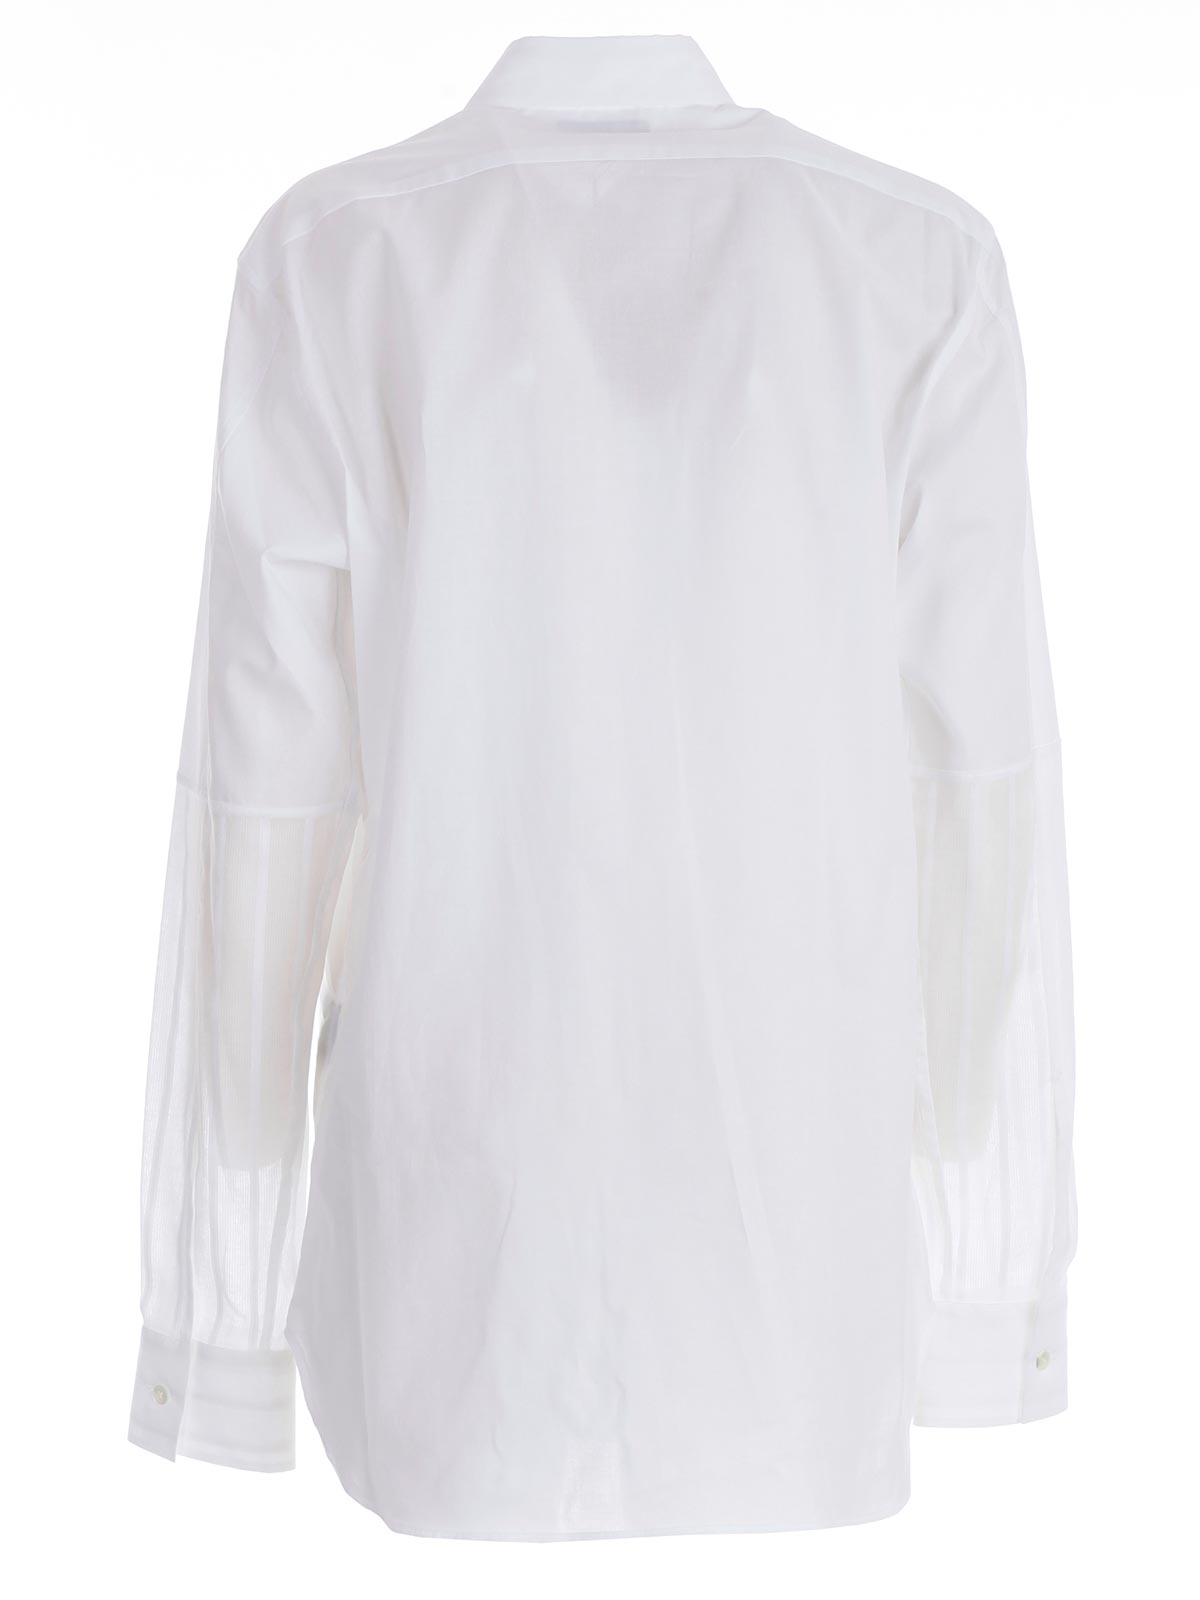 Picture of Ann Demeulemester Shirt